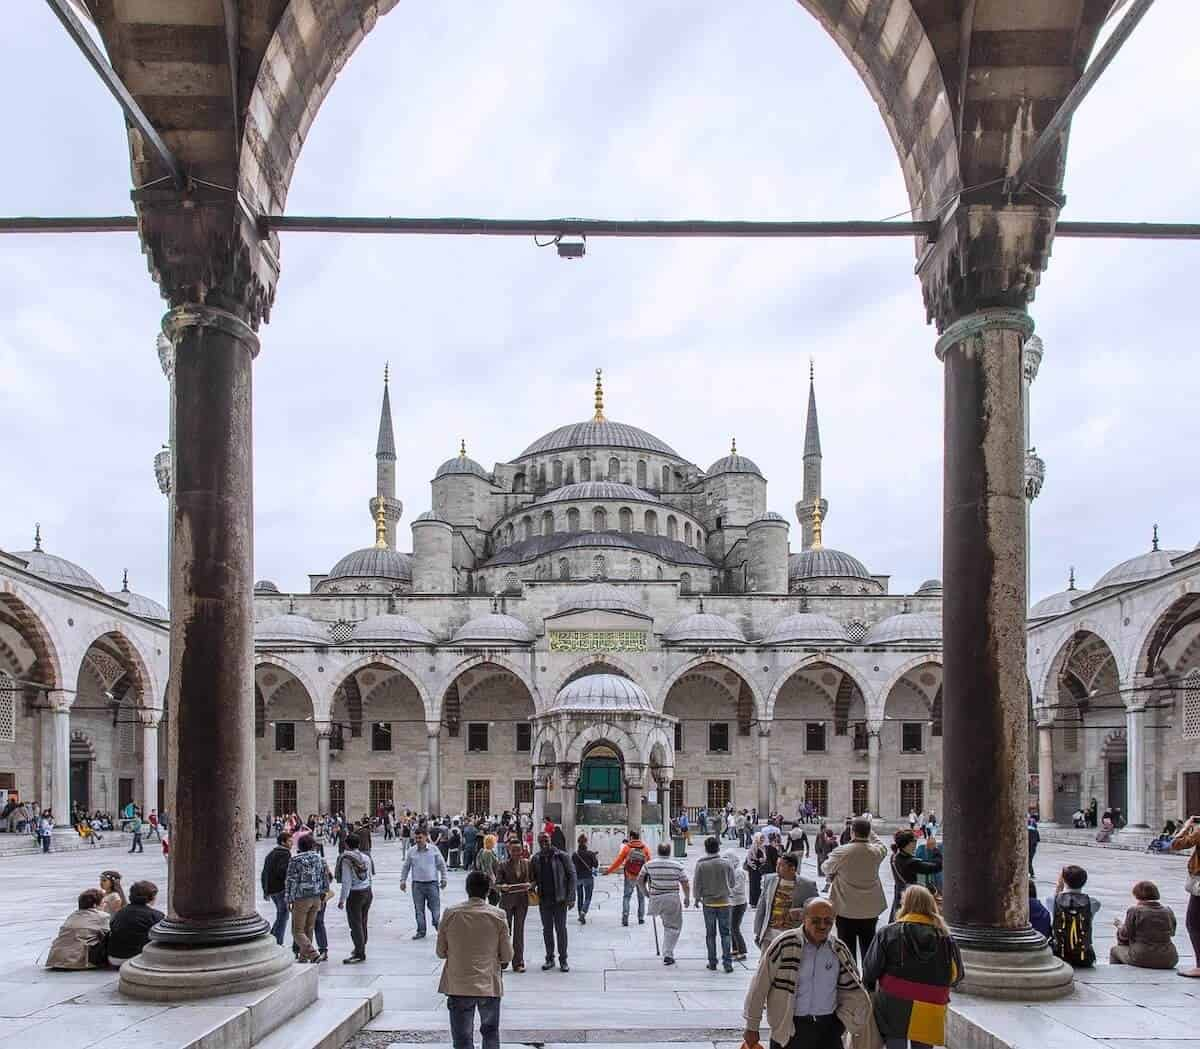 The view from inside the Blue Mosque feauring a courtyard surrounded by arched columns looking up towards the blue multi-domed structure of the mosque eith 2 of the minarets stading tall either side. Taking in this view is one fo the Best Things to do in Istanbul Turkey